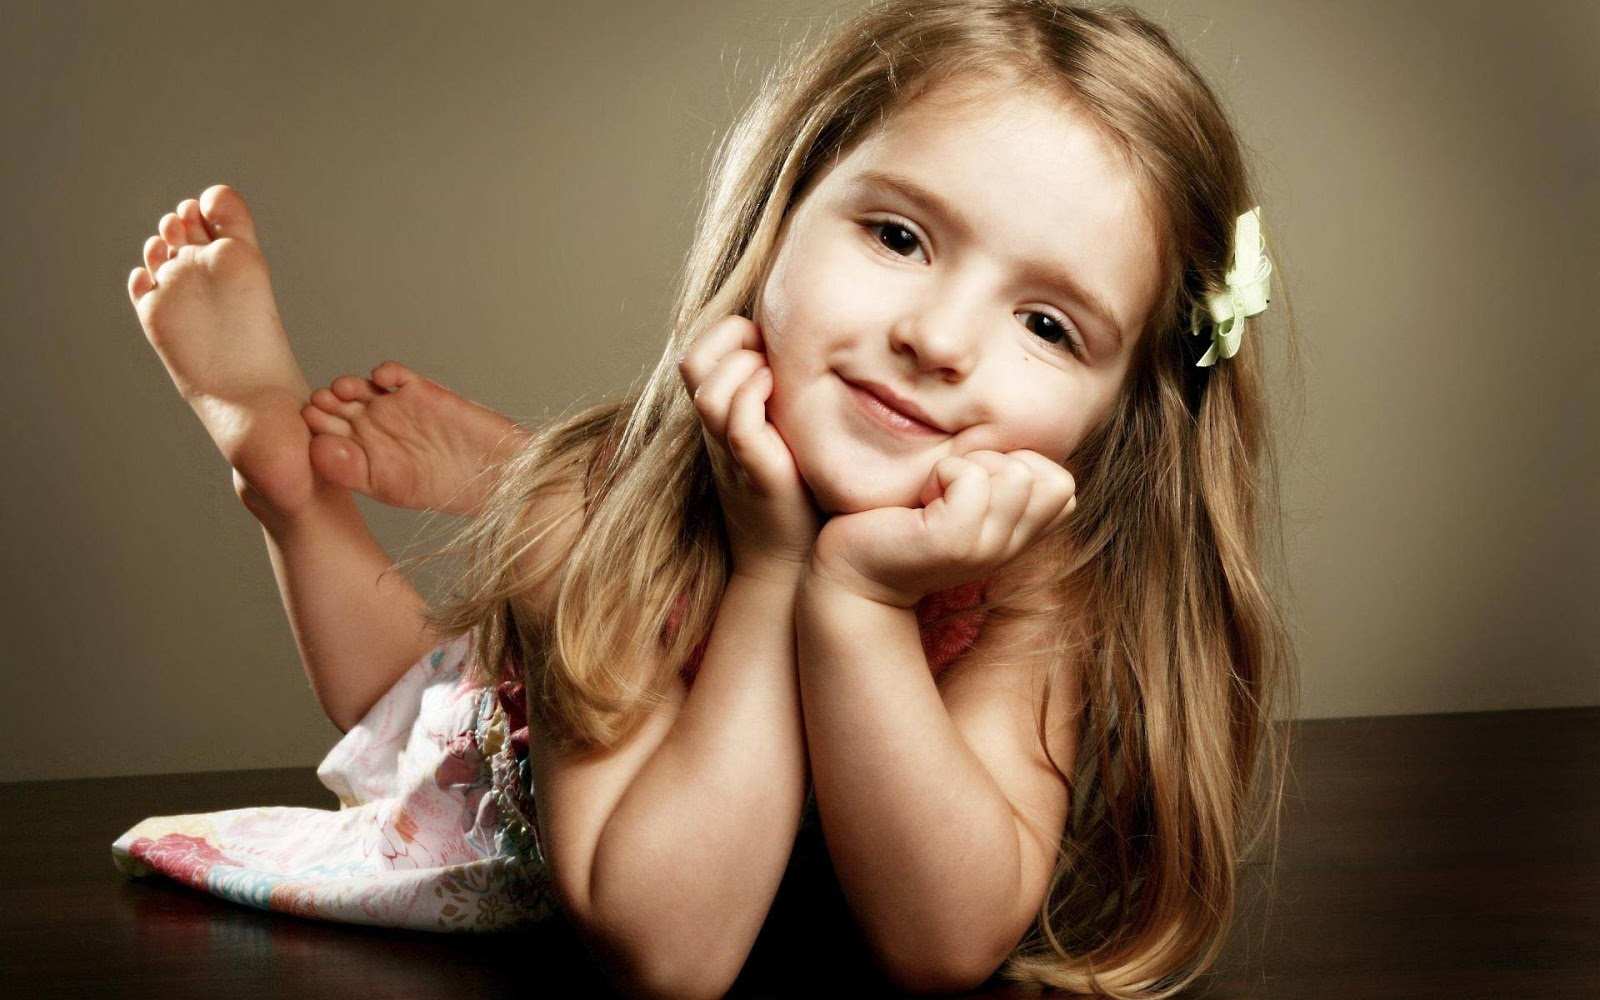 Cute Baby Girl Wallpaper Cute Baby Girl Wallpaper Wallpaper